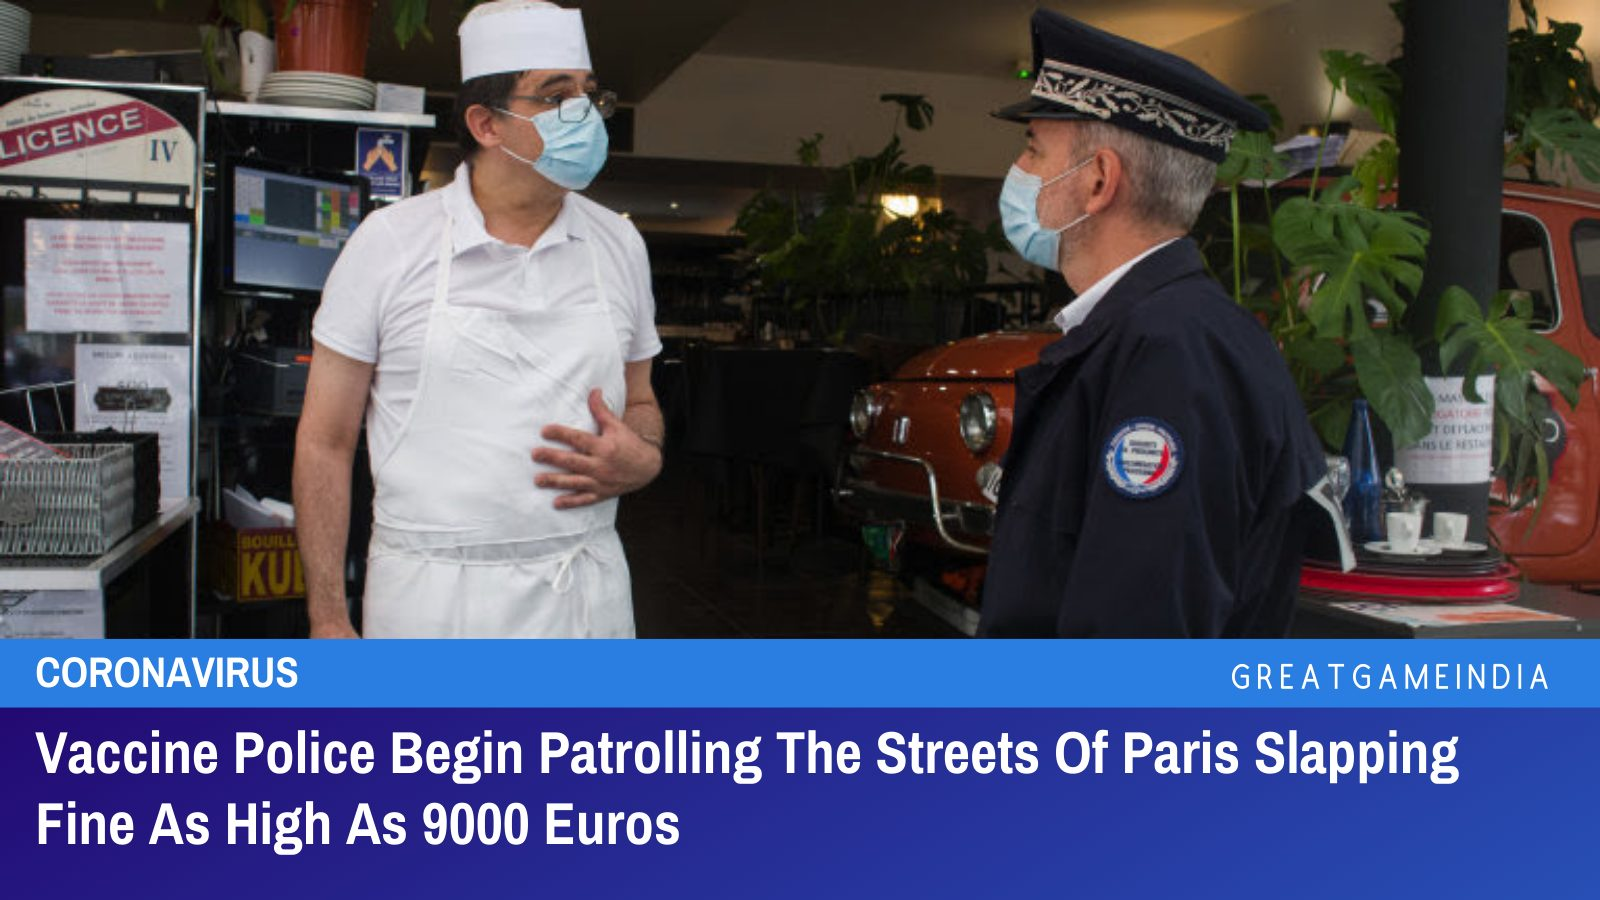 Vaccine Police Begin Patrolling The Streets Of Paris Slapping Fine As High As 9000 Euros